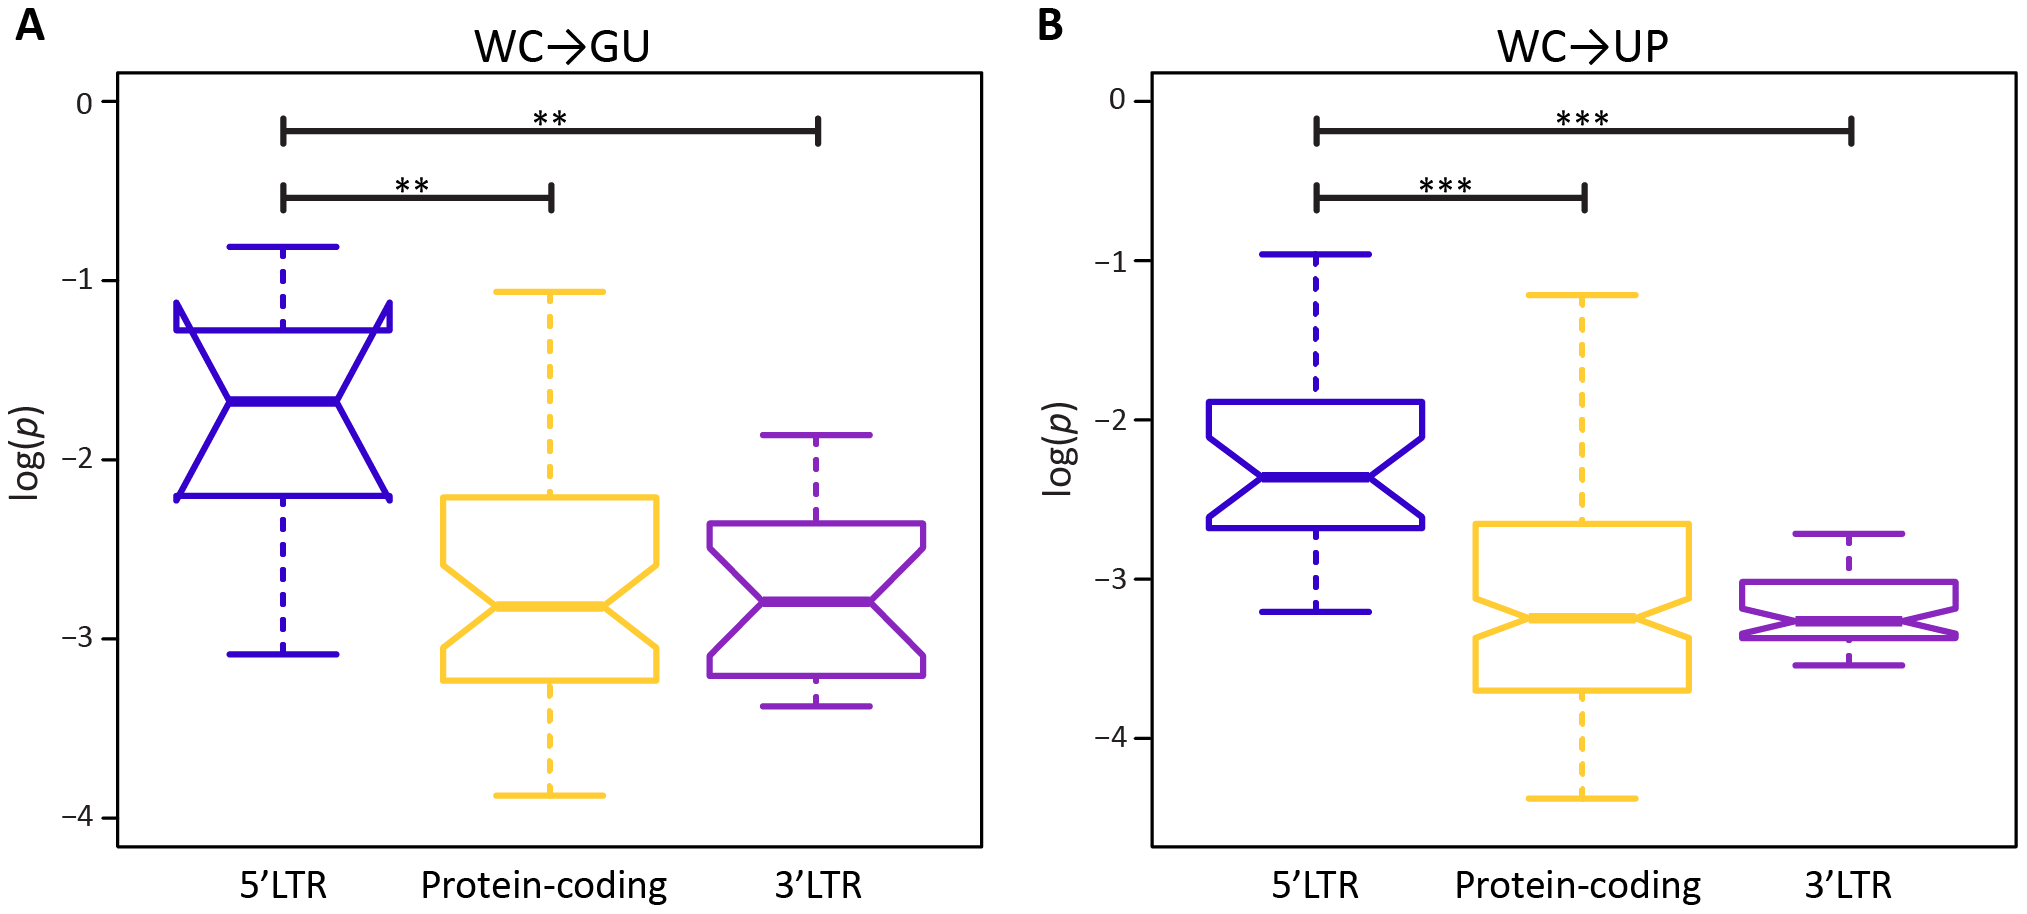 Intra-population frequencies of single-site WC replacement polymorphisms in 5′LTR, protein-coding, and 3′LTR regions of the HIV-1 genome.